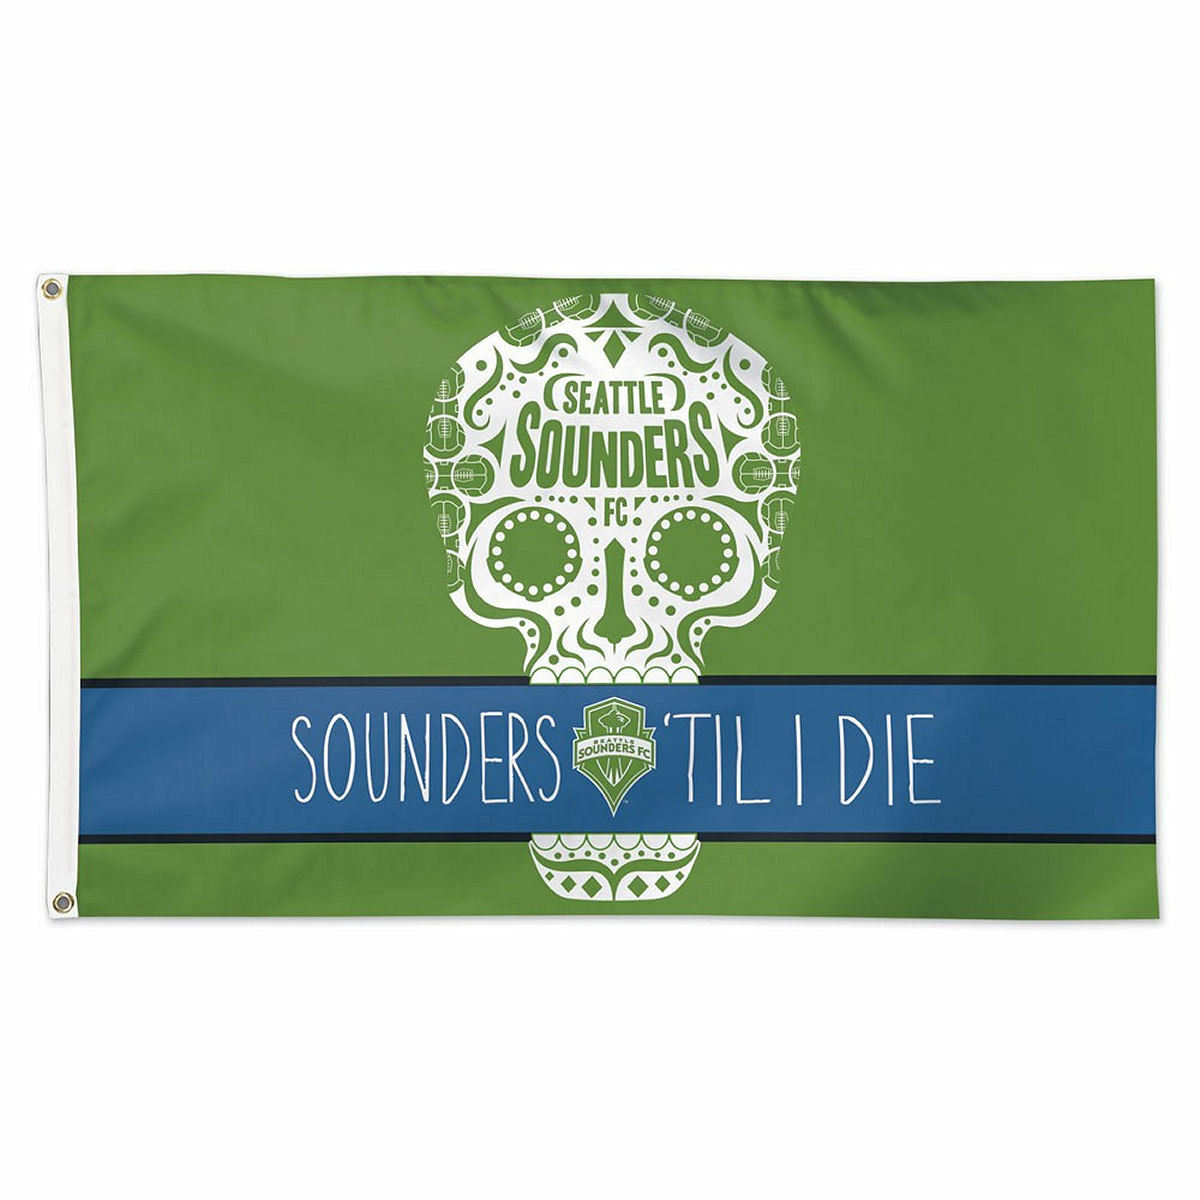 3 x 5 WinCraft Soccer Seattle Sounders 06915115 Deluxe Flag